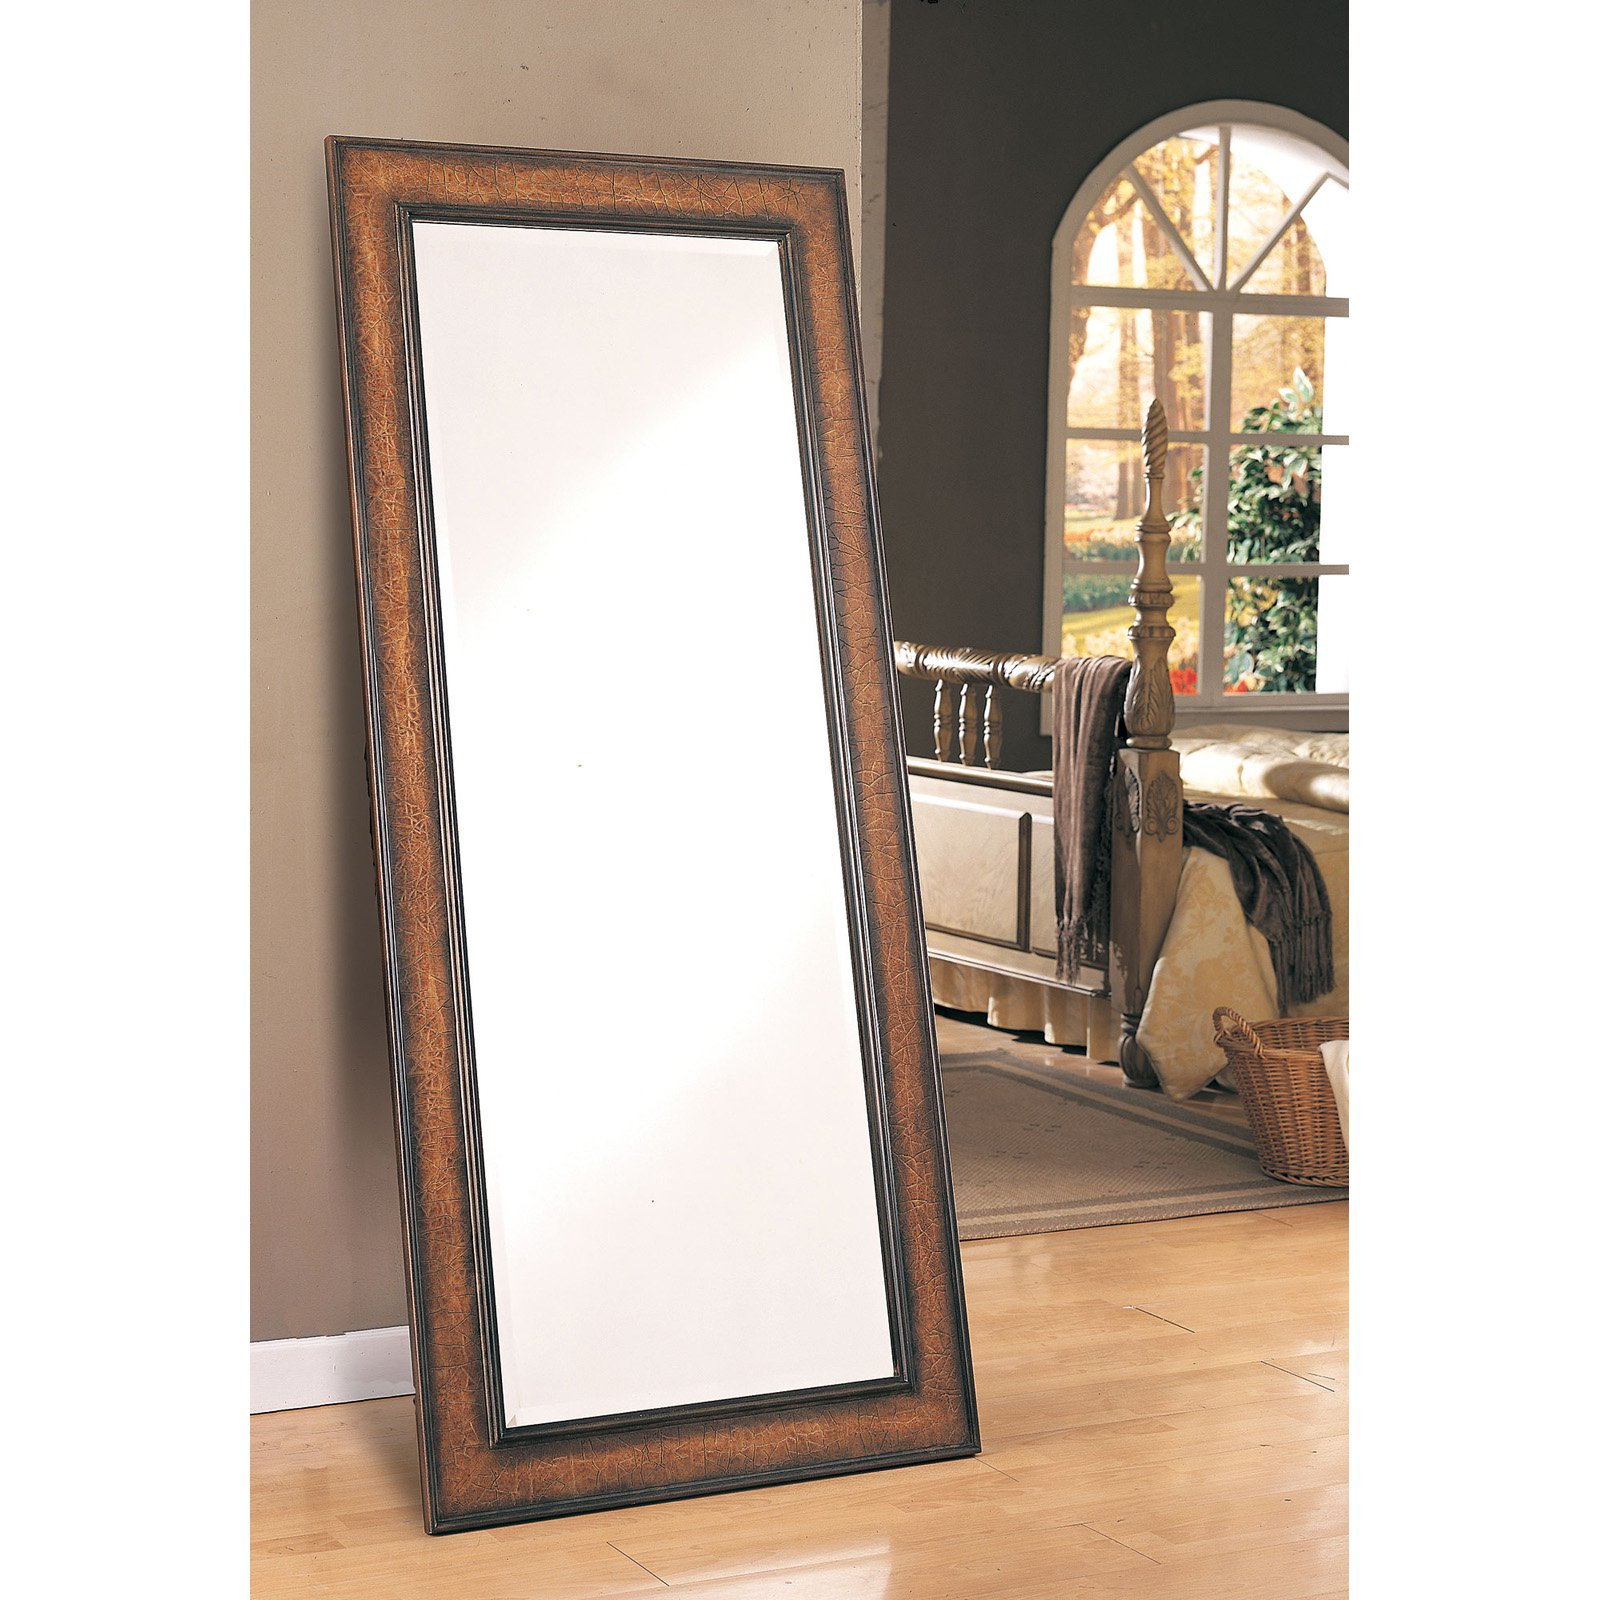 Coaster Floor Mirror, Antique Brown Finish by Coaster Company